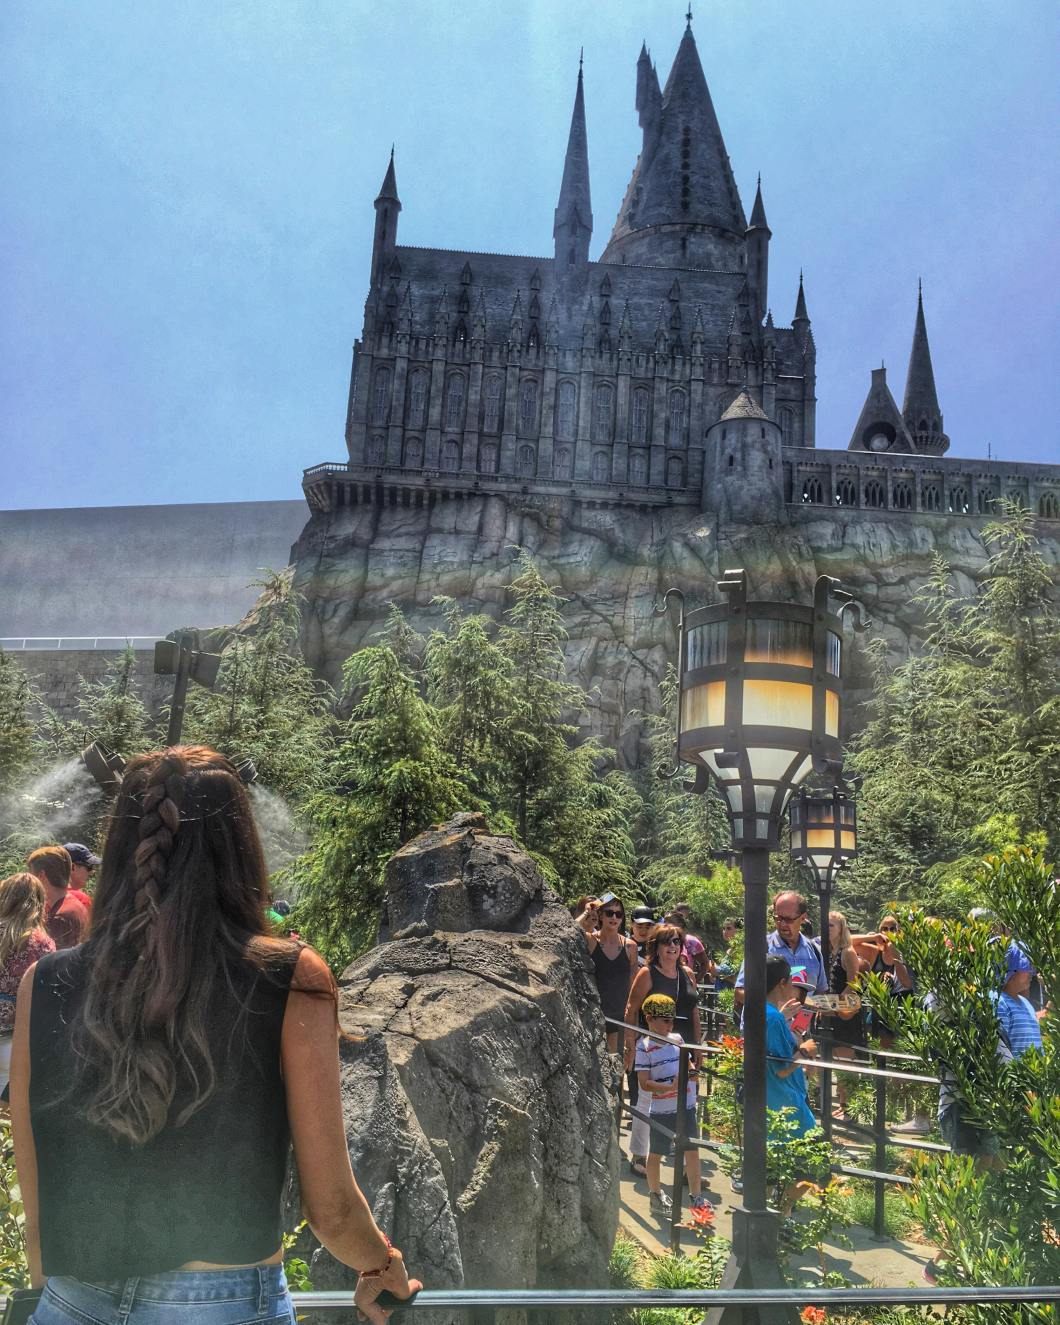 magic-and-spells-in-the-world-of-harry potter-travel-travel tips-lifestyle-style by nomads-stylebynomads-style by nomads blog